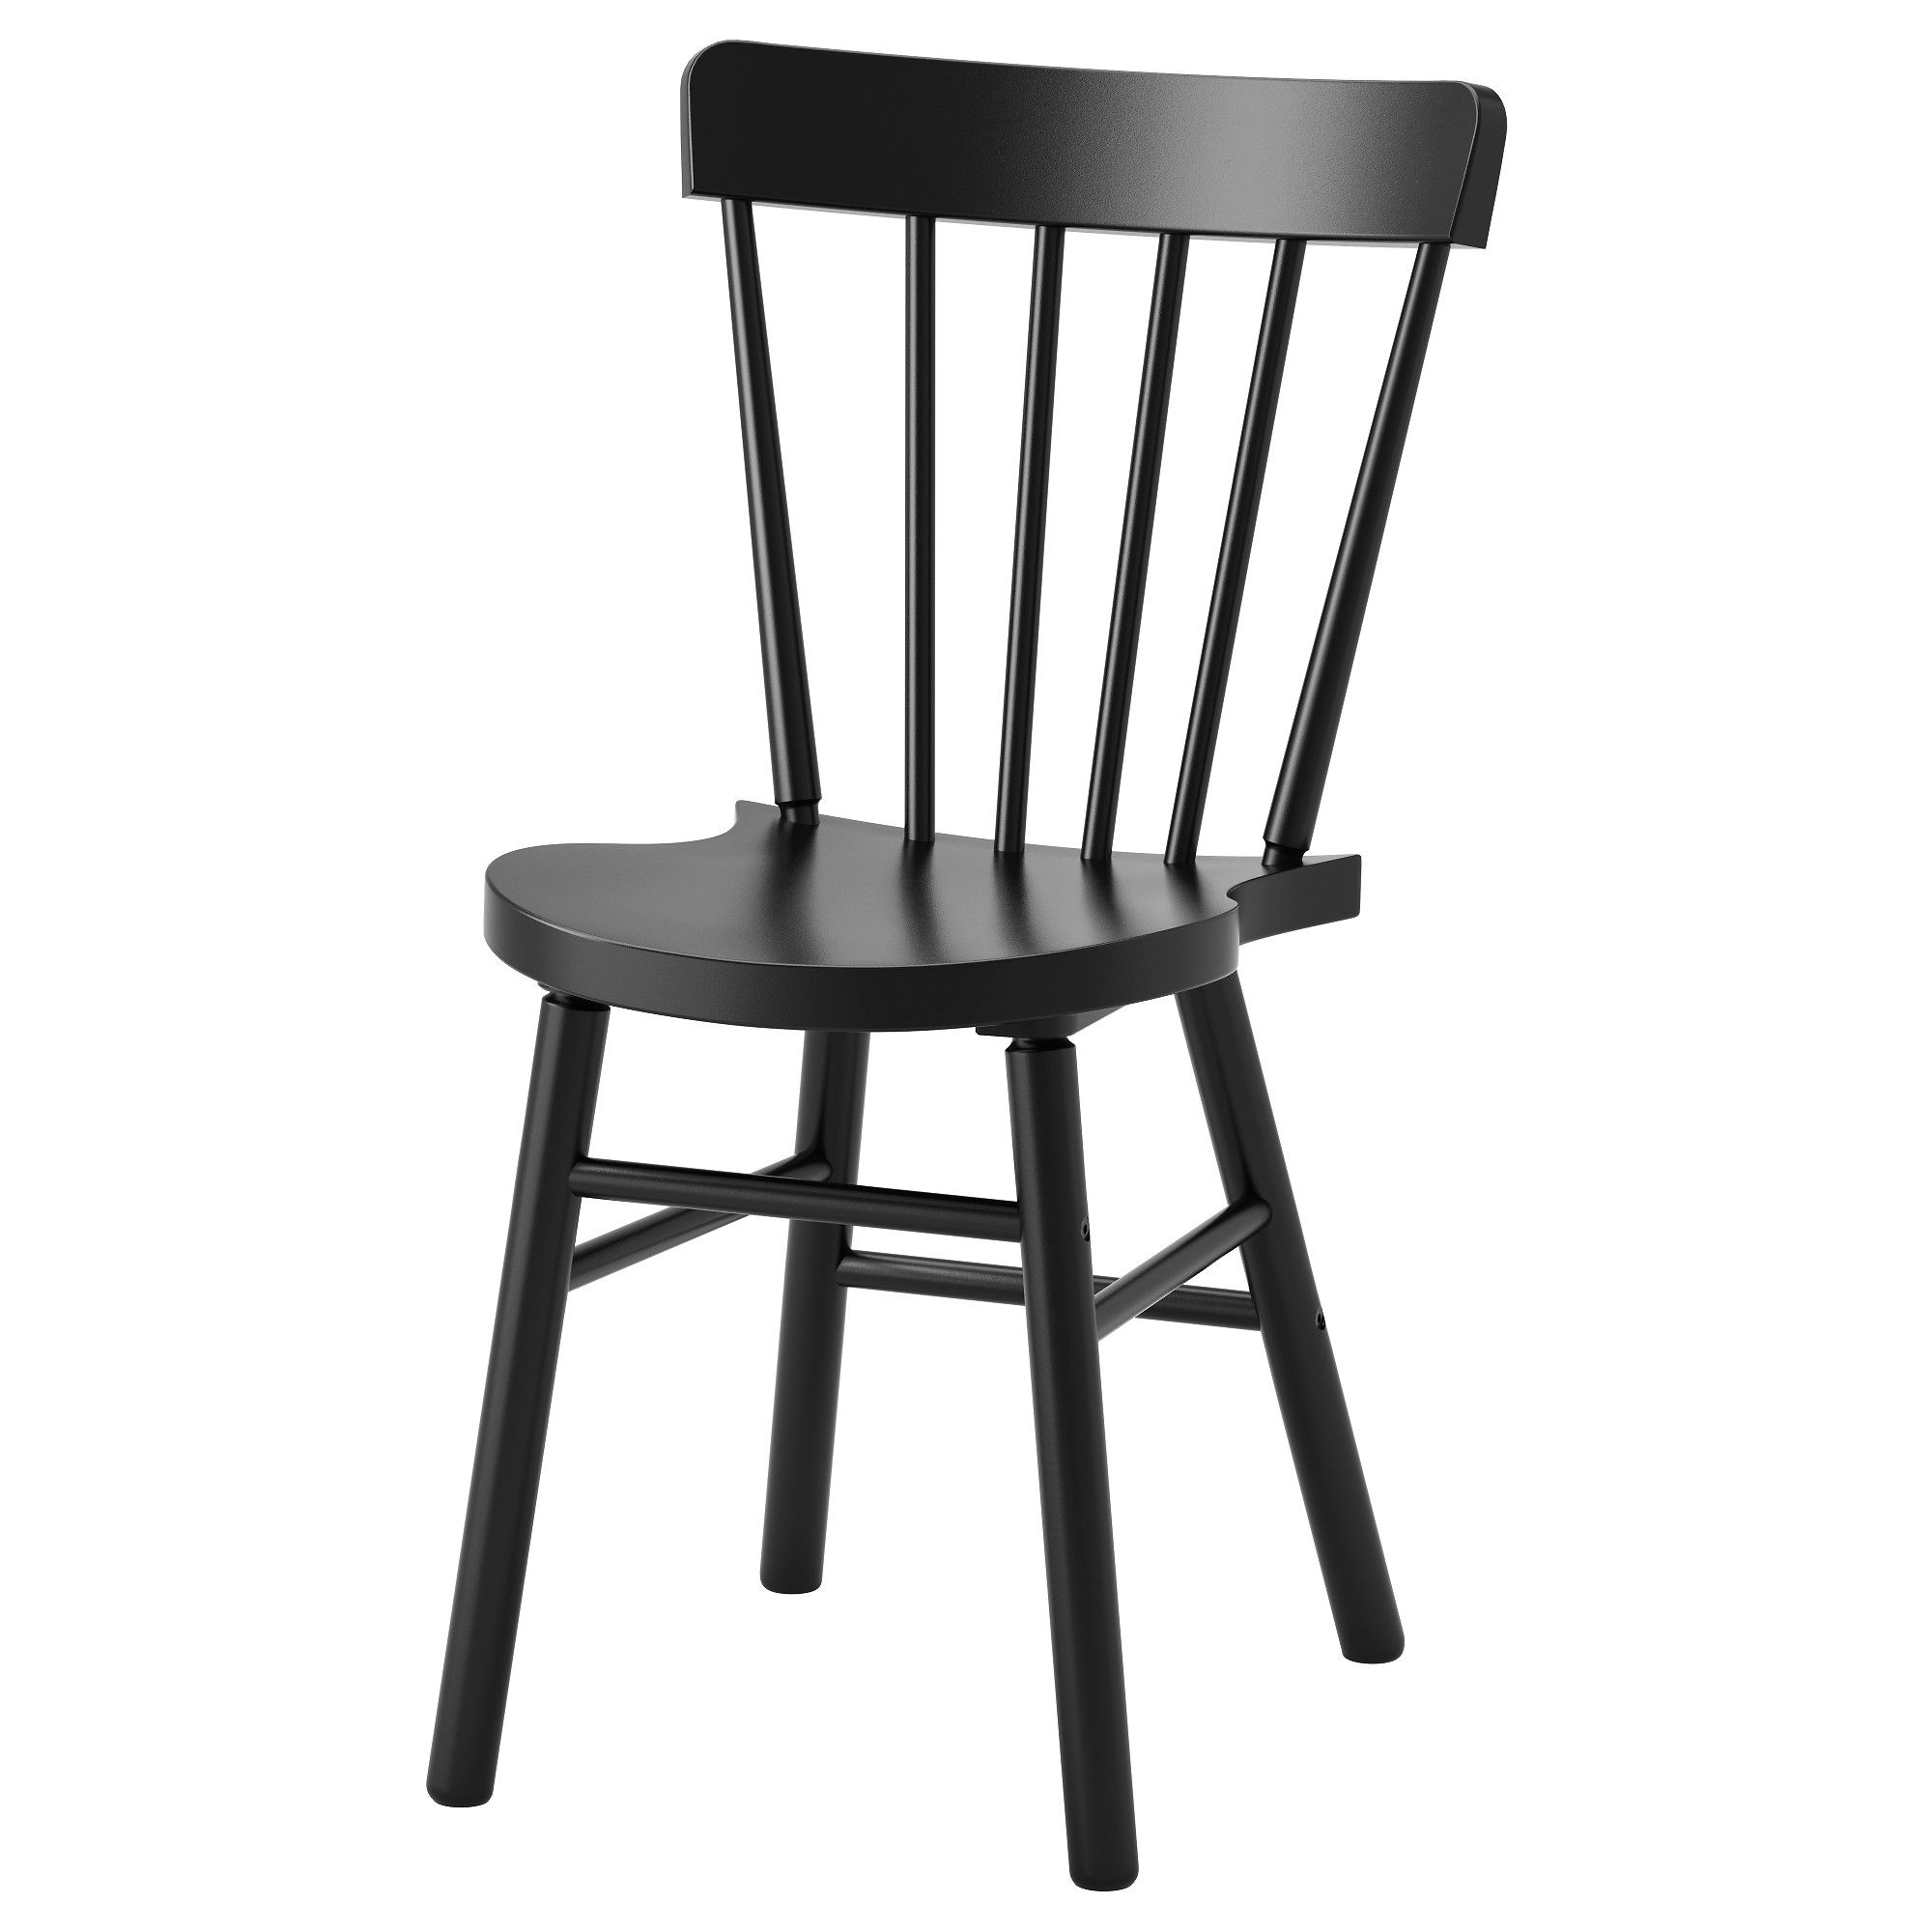 Dining Chairs Ikea Ikea Norraryd Black Chair Wishes Ikea Dining Chair Dining